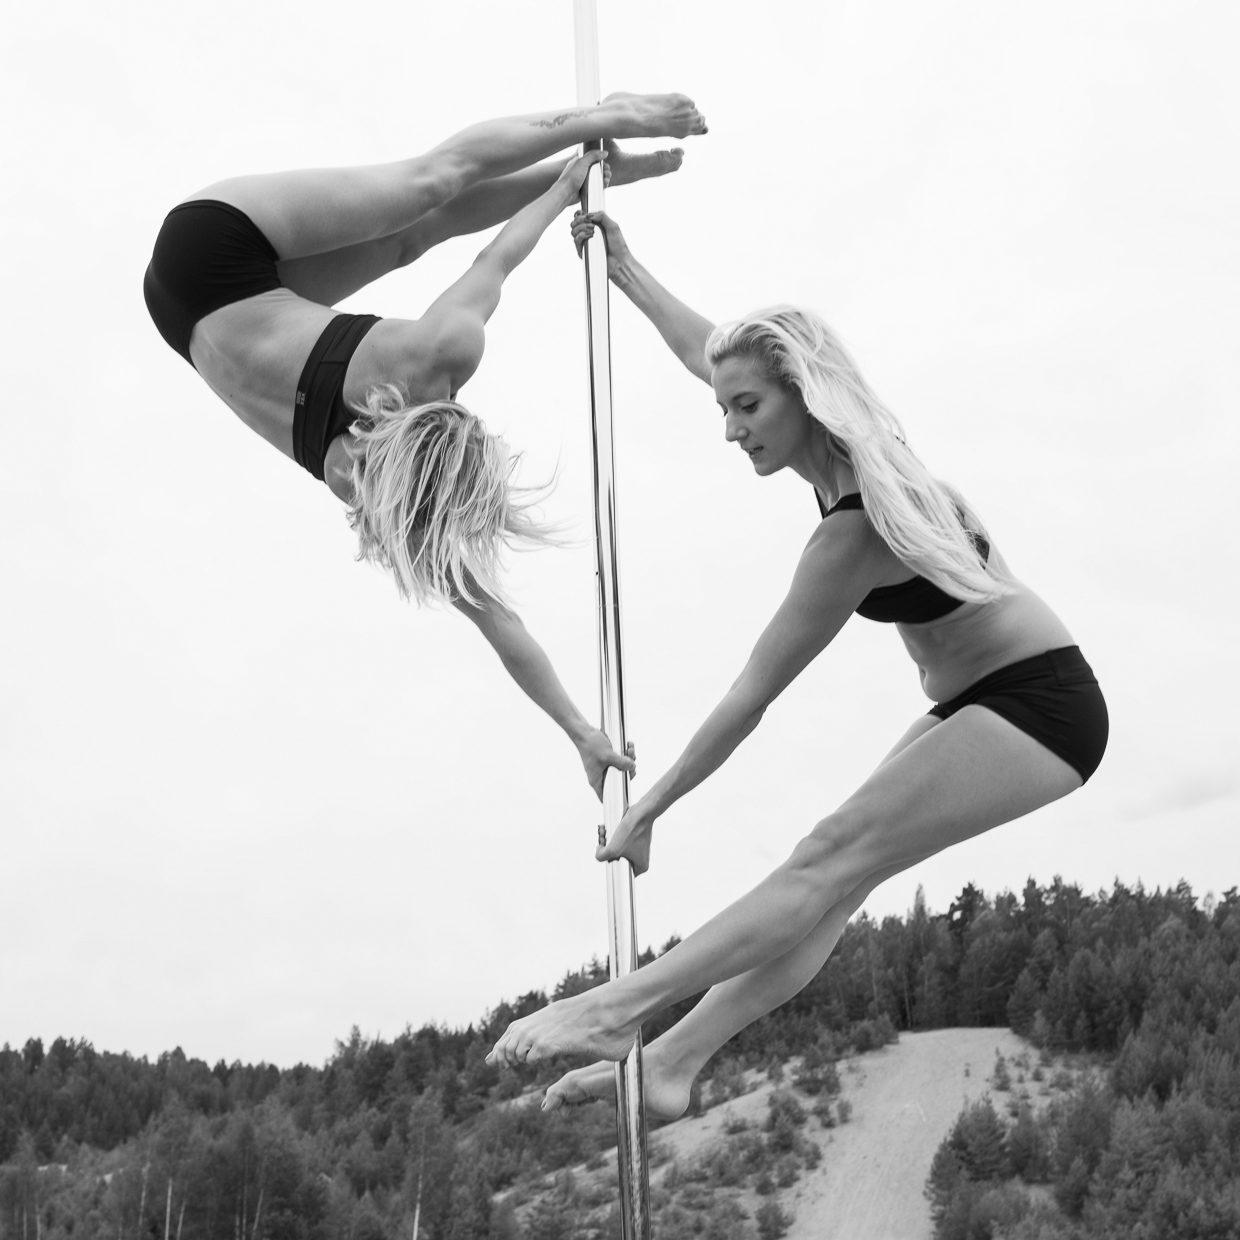 Therese Larsson and Helle Carlstedt pole dancing together.